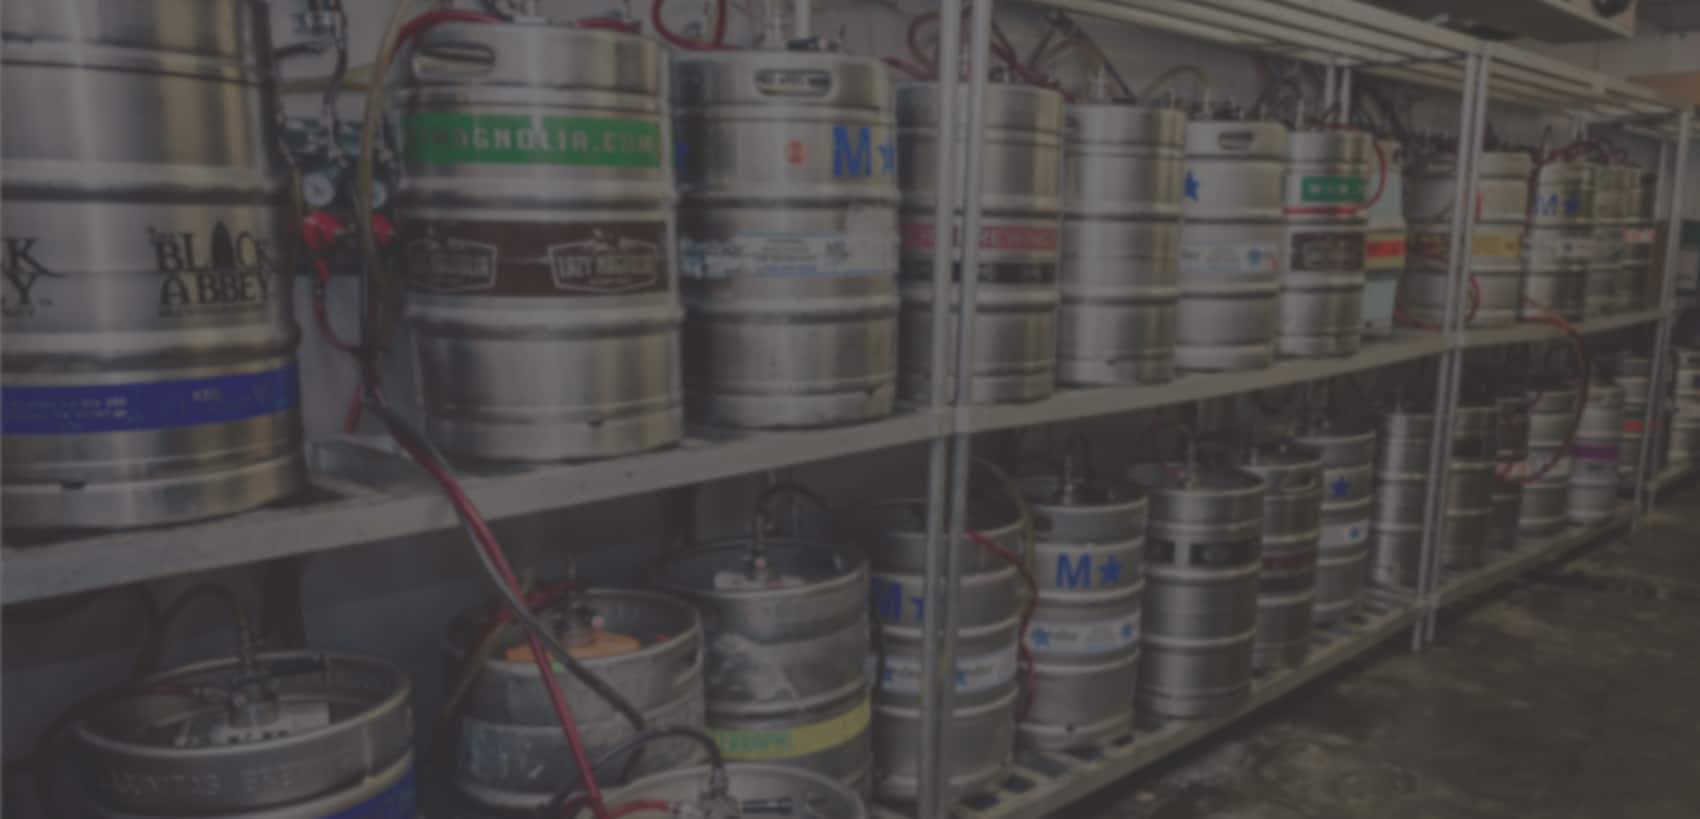 taphunter cold box kegs